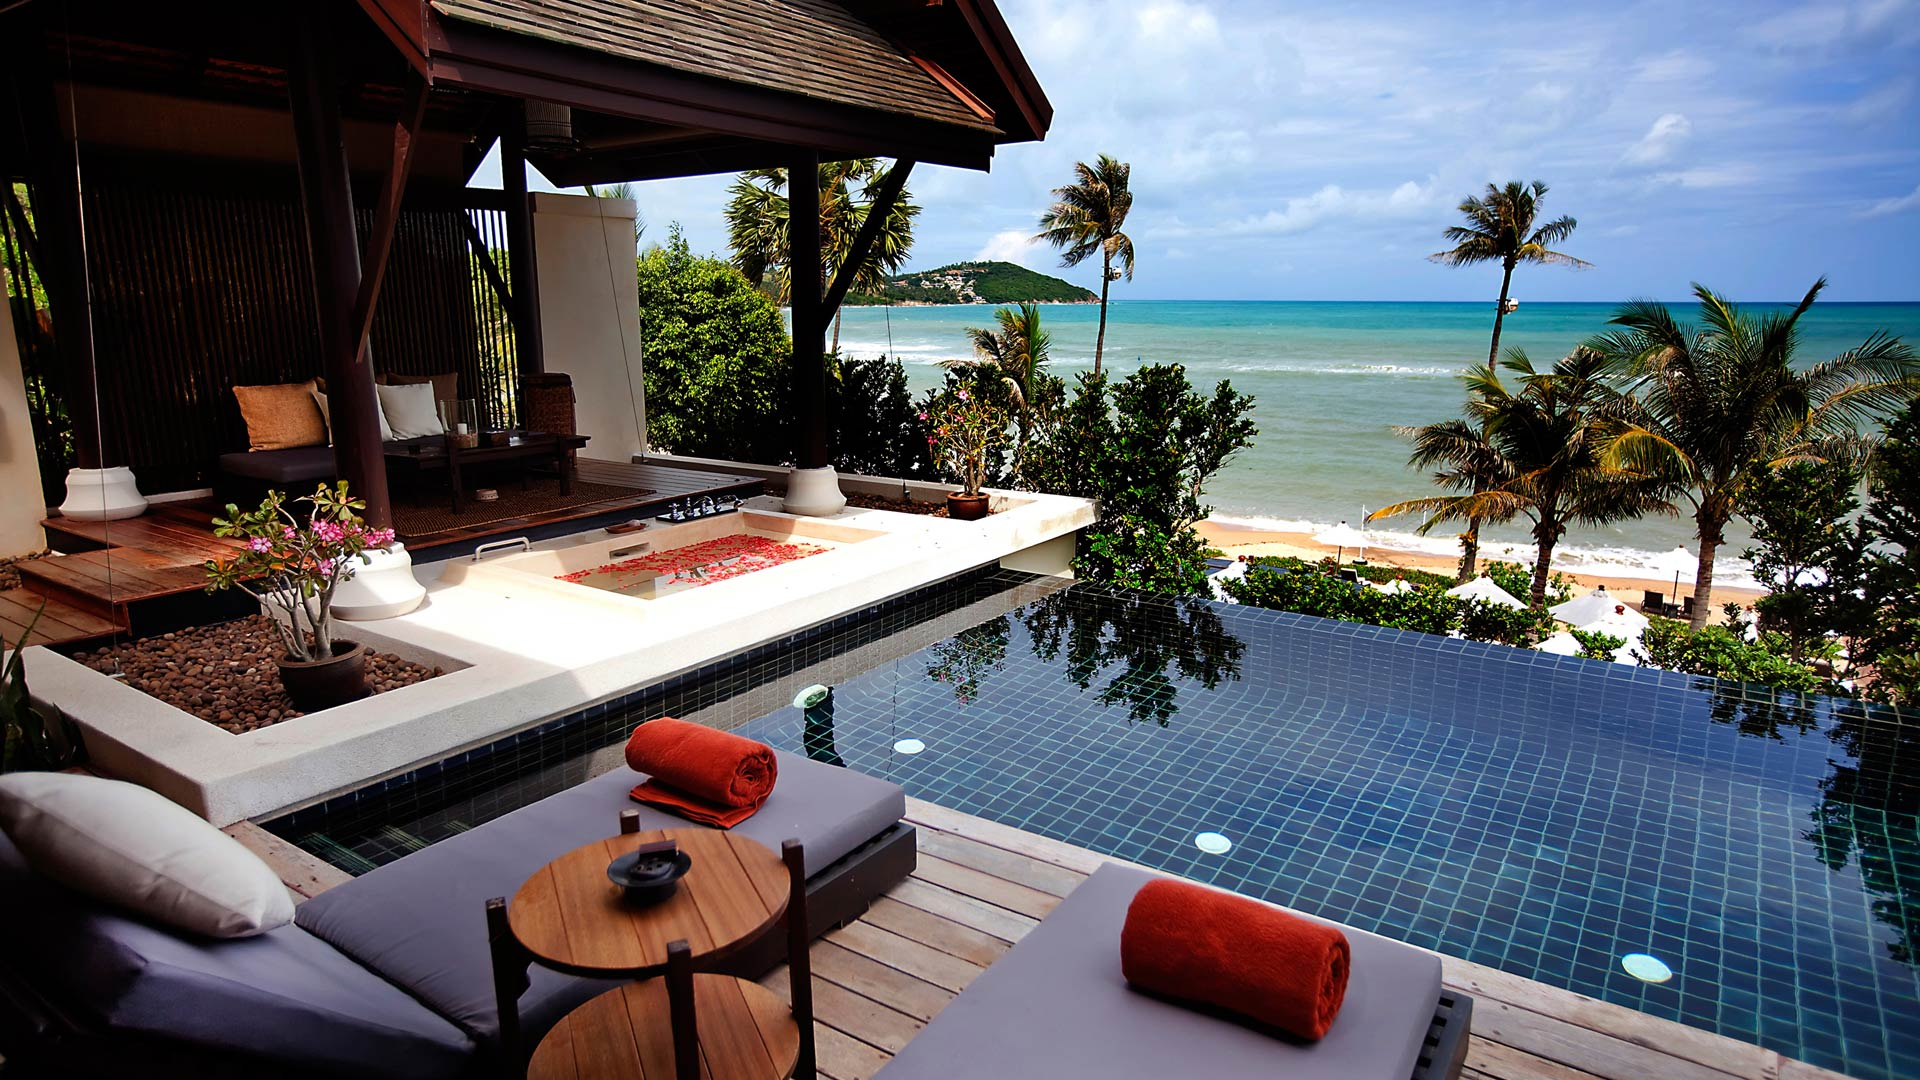 koh samui hotel tipps reiseblog f r s dostasien home is where your bag is. Black Bedroom Furniture Sets. Home Design Ideas